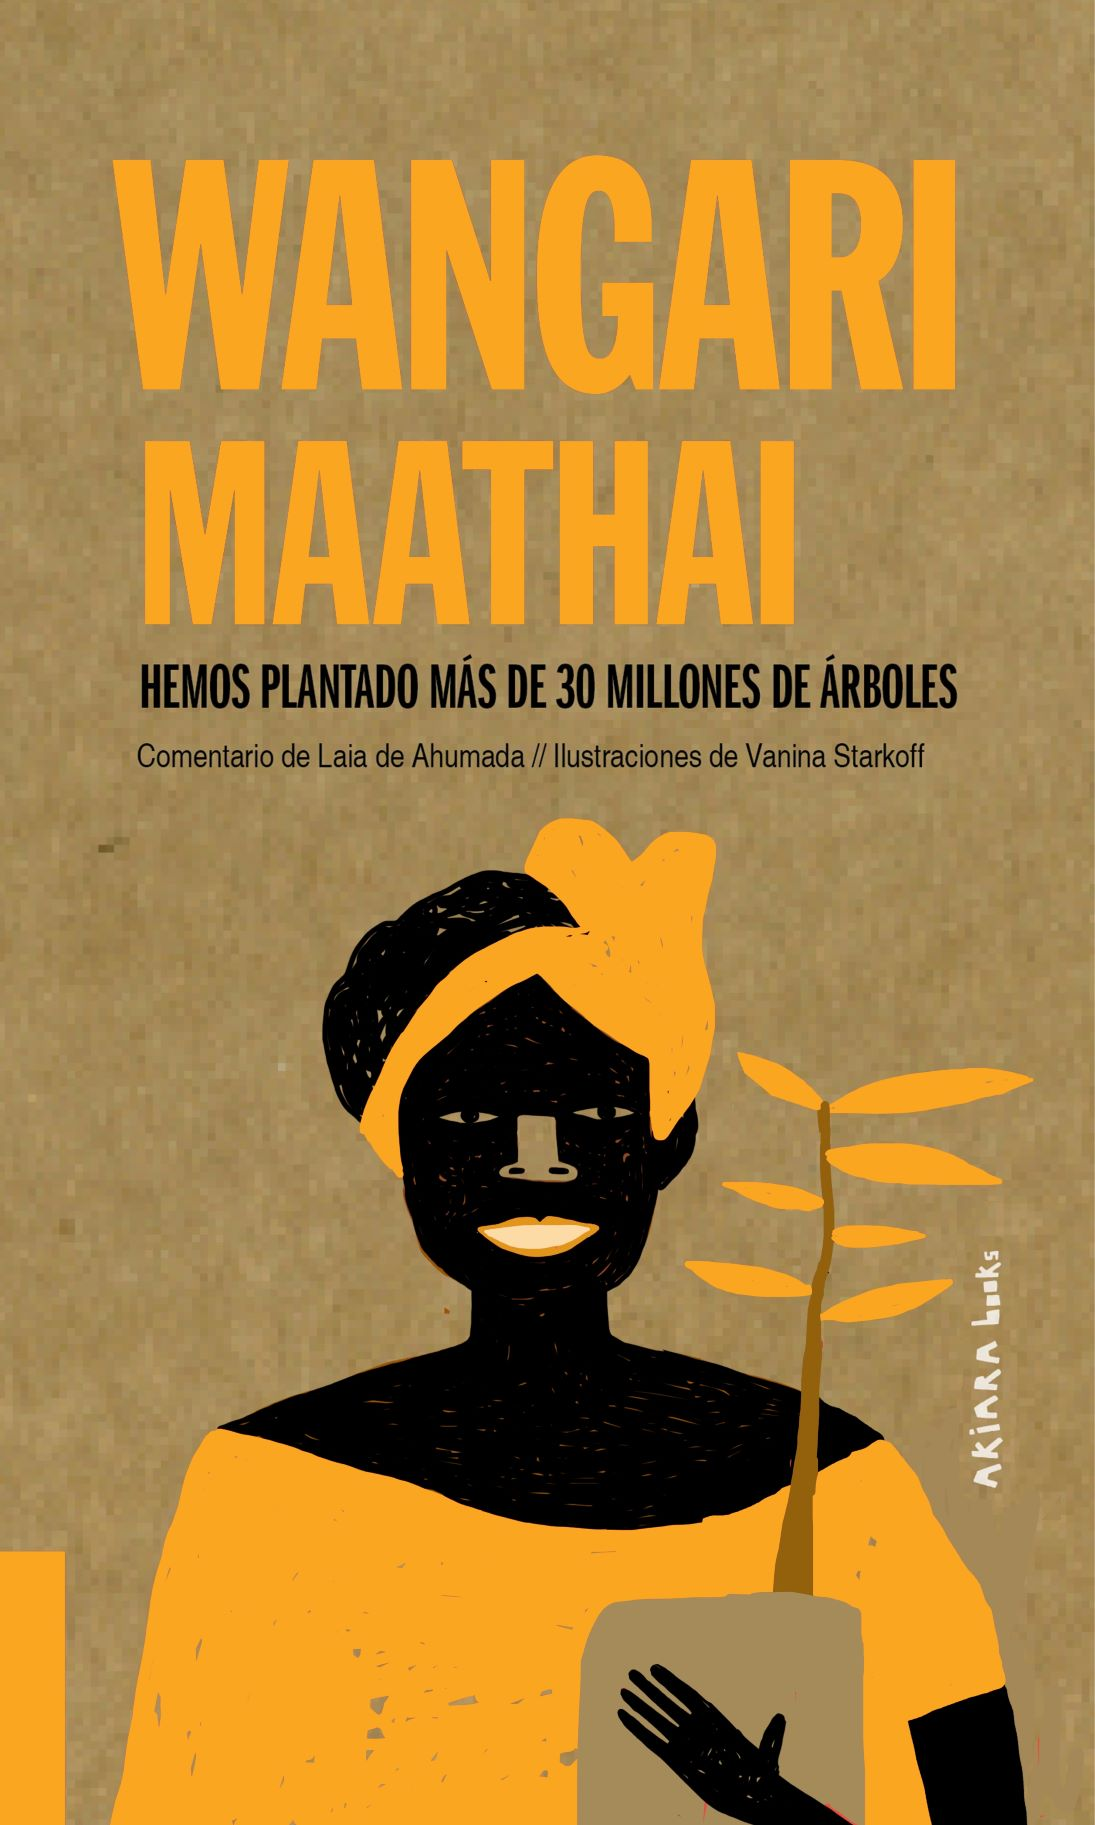 Wangari Maathai akiparla final cover sept. 2020